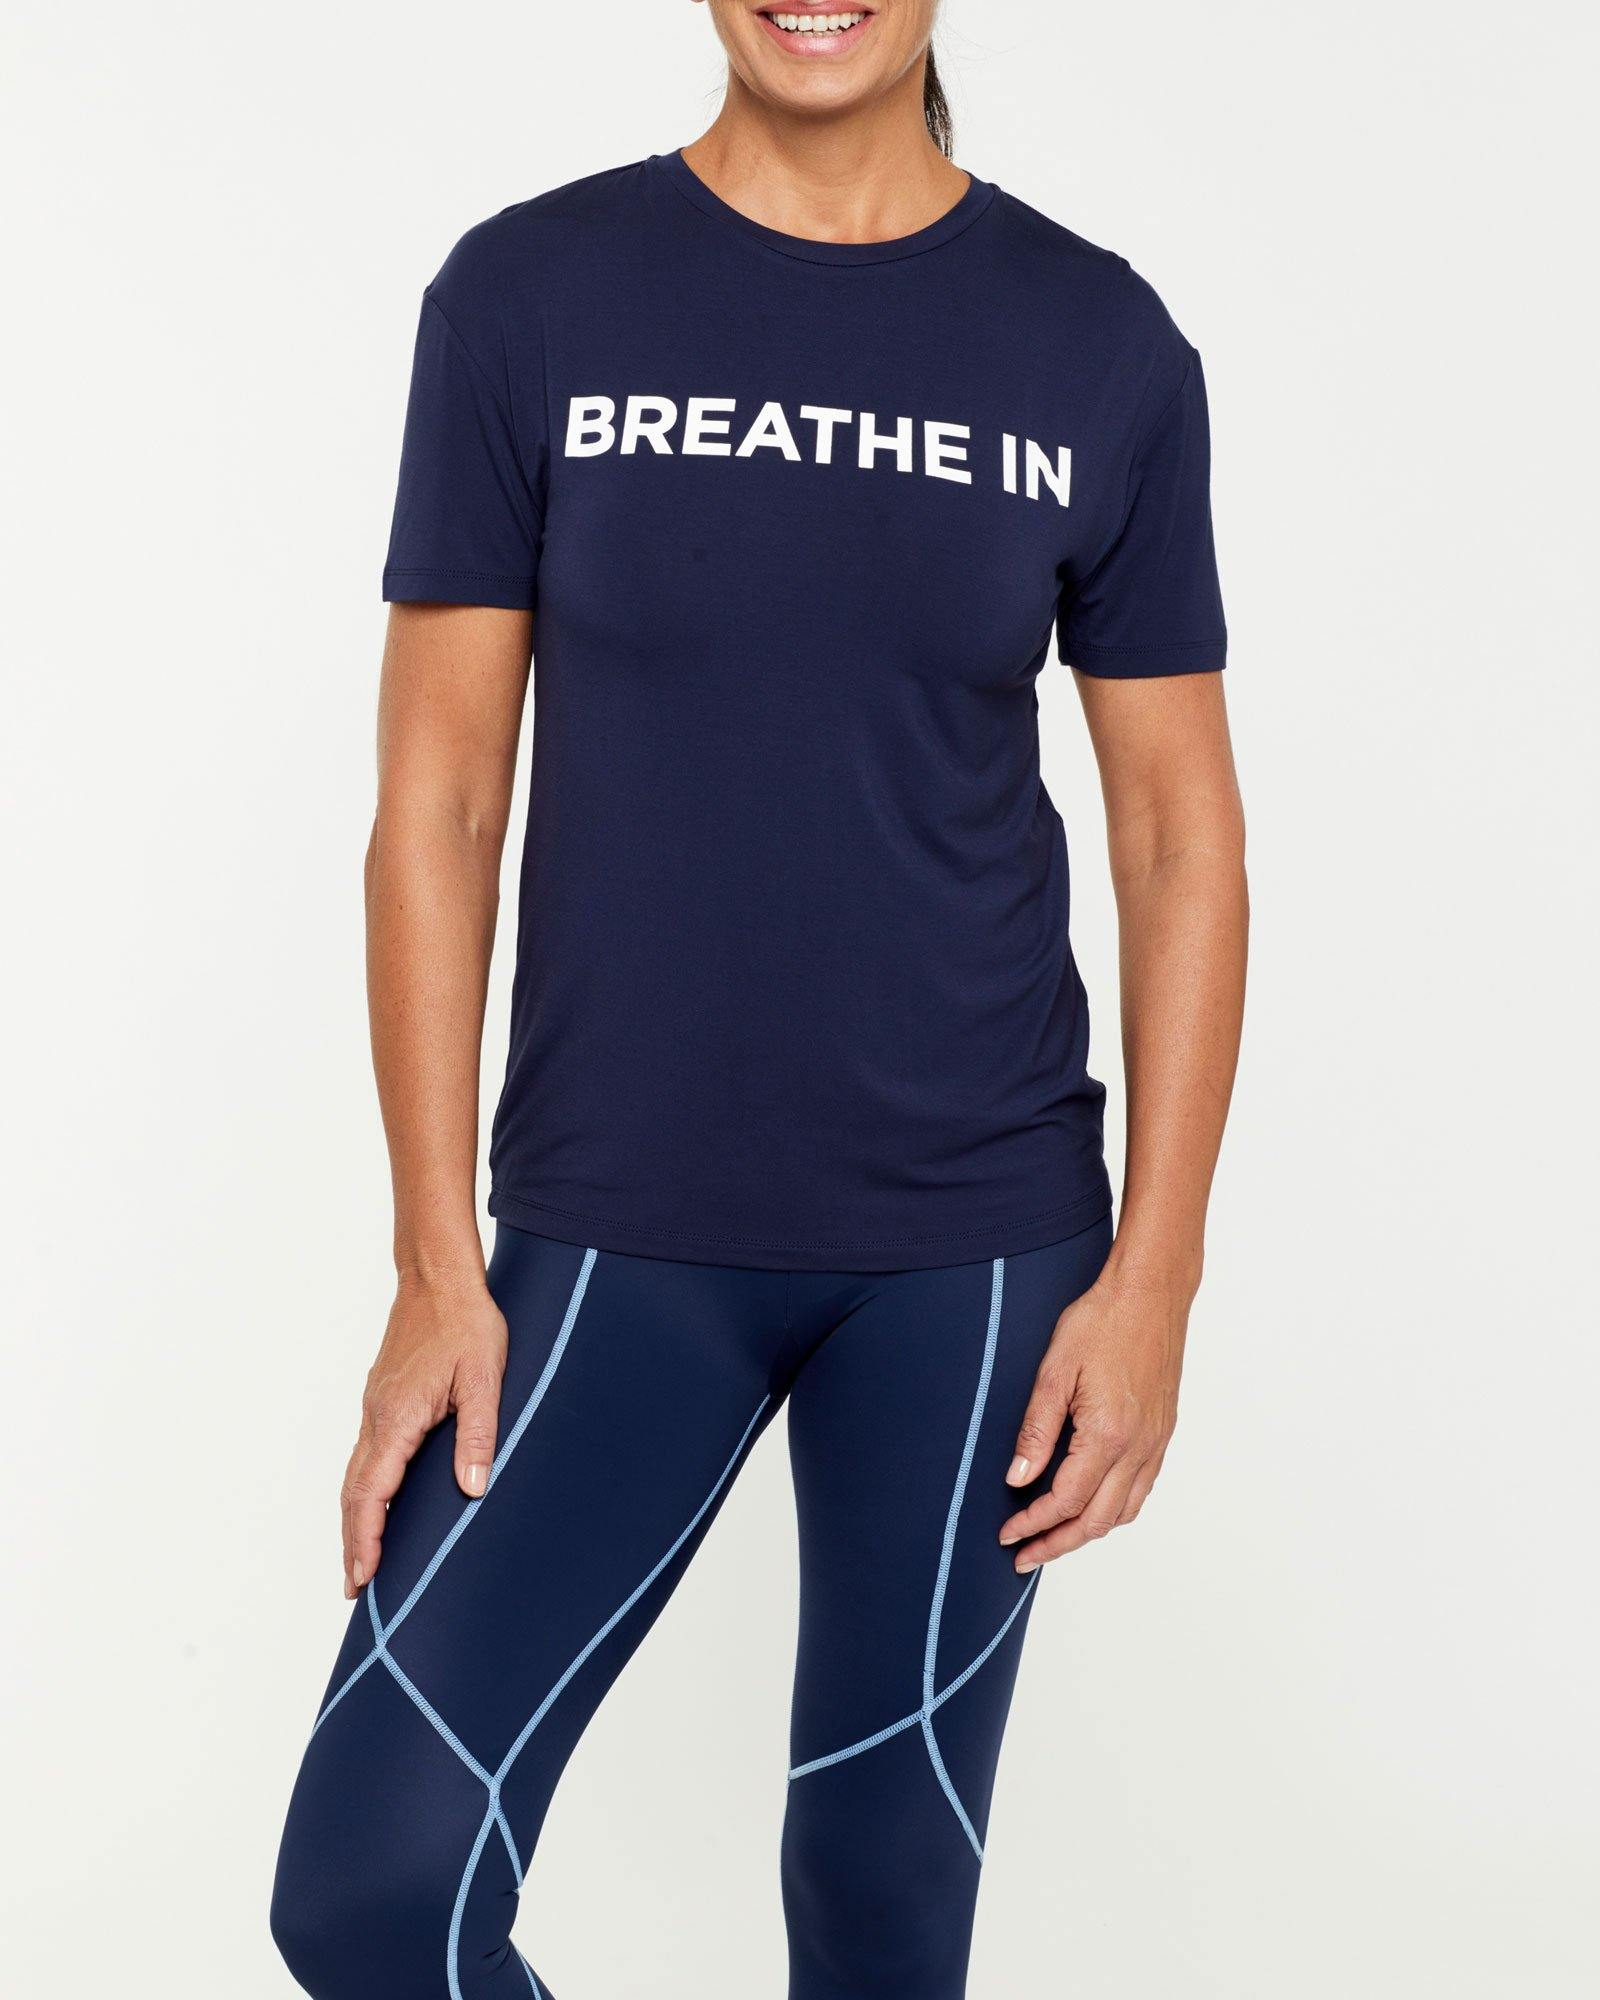 Femininely SCAPULAE Bamboo T-SHIRT, Navy blue WITH WHITE MESSAGING, WORN WITH VASTUS LEGGING, FRONT VIEW